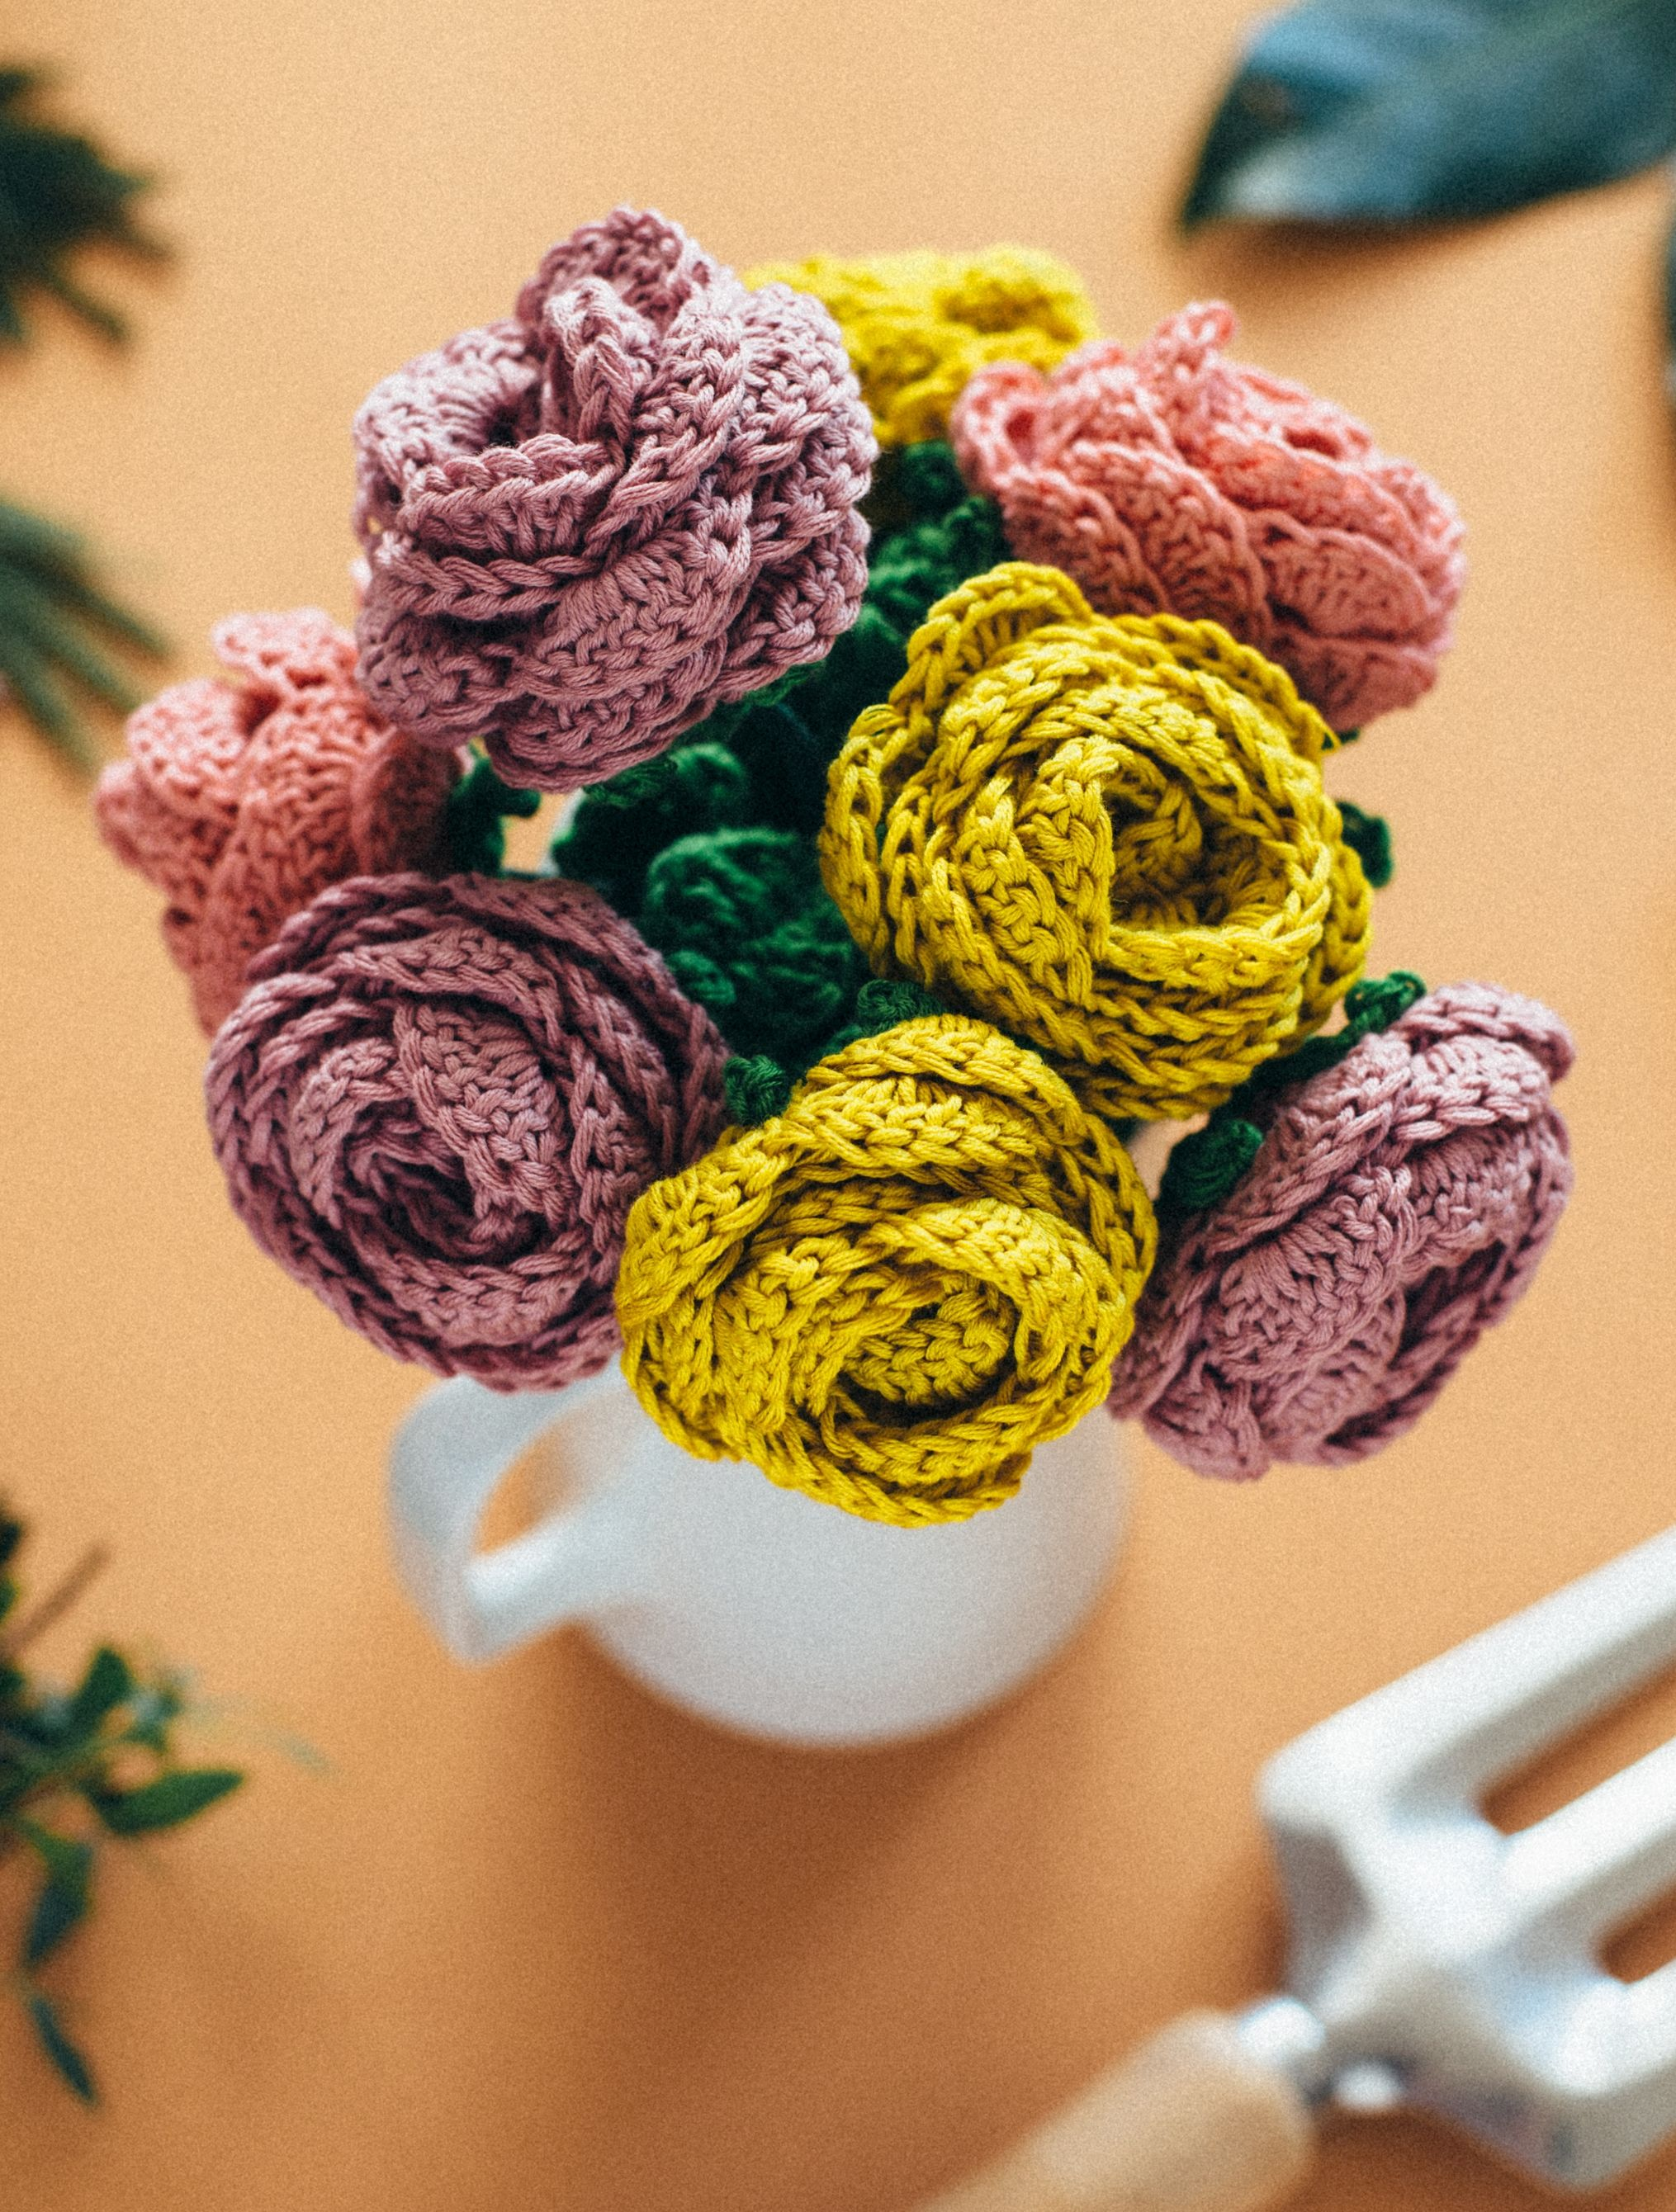 DIY: crochet flower bouquet | Craft & DIY | Pinterest | Diy crochet ...